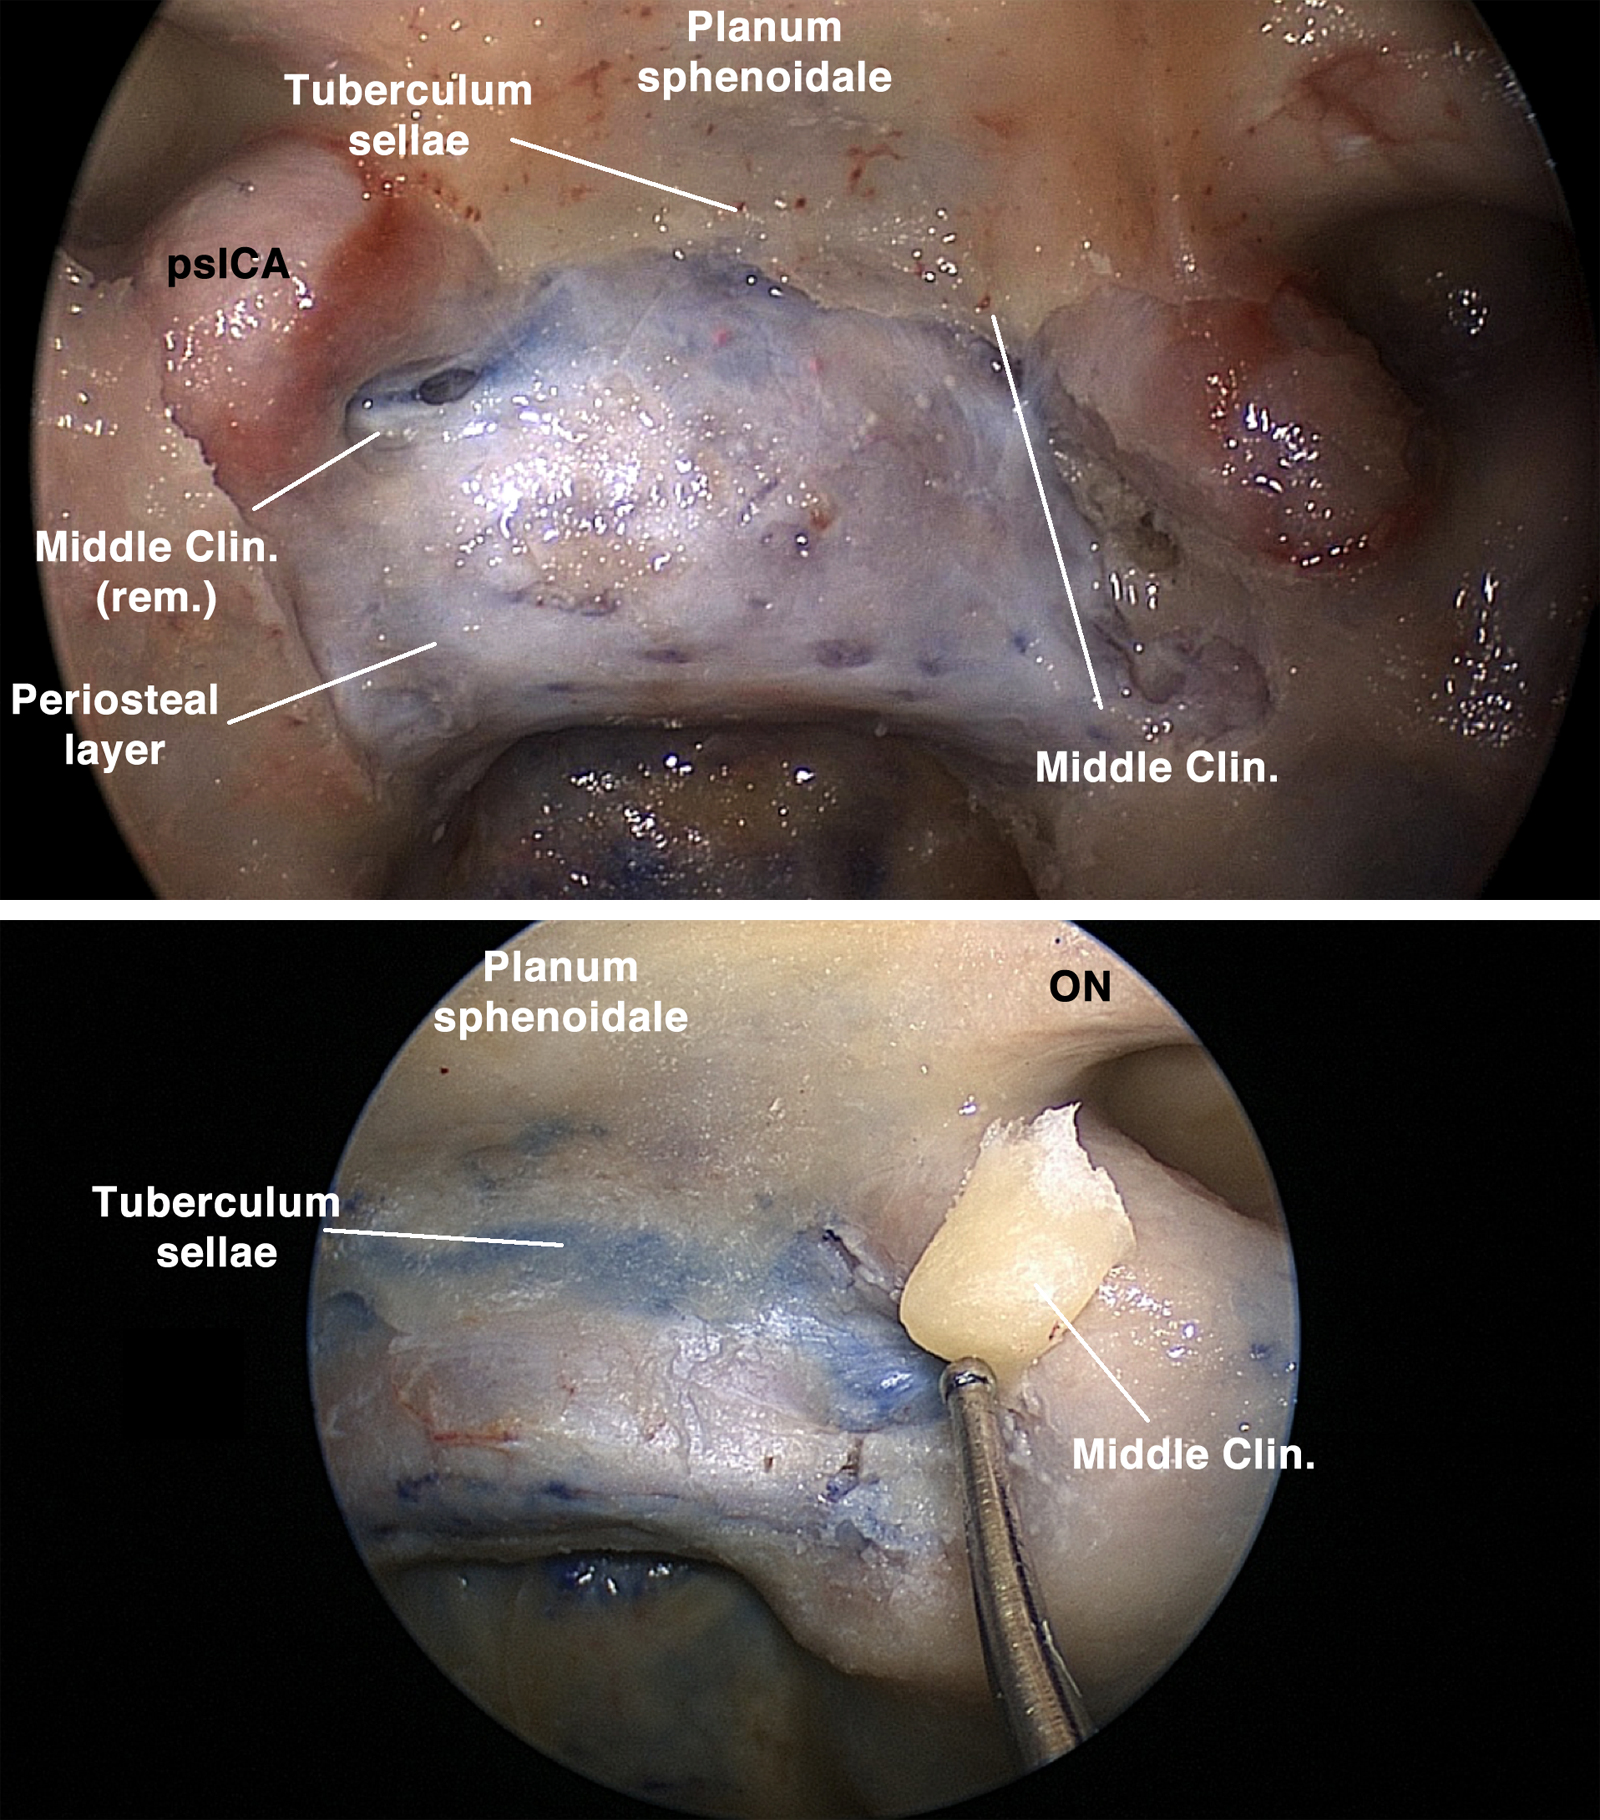 Figure 2: Top photograph: the middle clinoid process (Middle Clin.) was removed on the right side, but preserved on the left in order to demonstrate the gain in the exposure of the parasellar ICA (psICA) by removal of the process. Bottom image: this is an enhanced view after resection of the left middle clinoid process. ON: Optic Nerve (image courtesy of Juan Fernandez-Miranda).